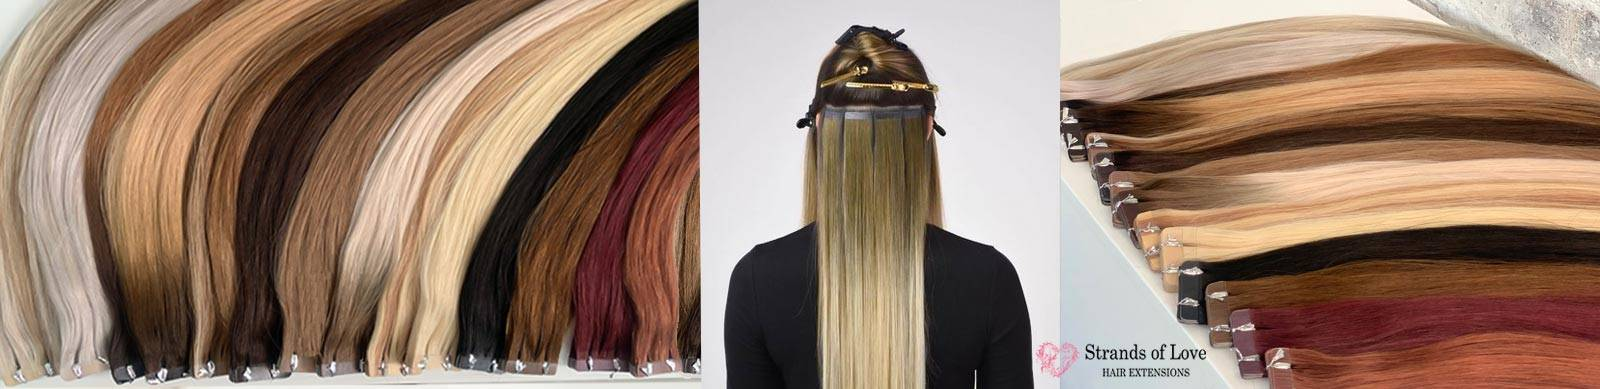 Strands of Love Hair Extension Tape In Image